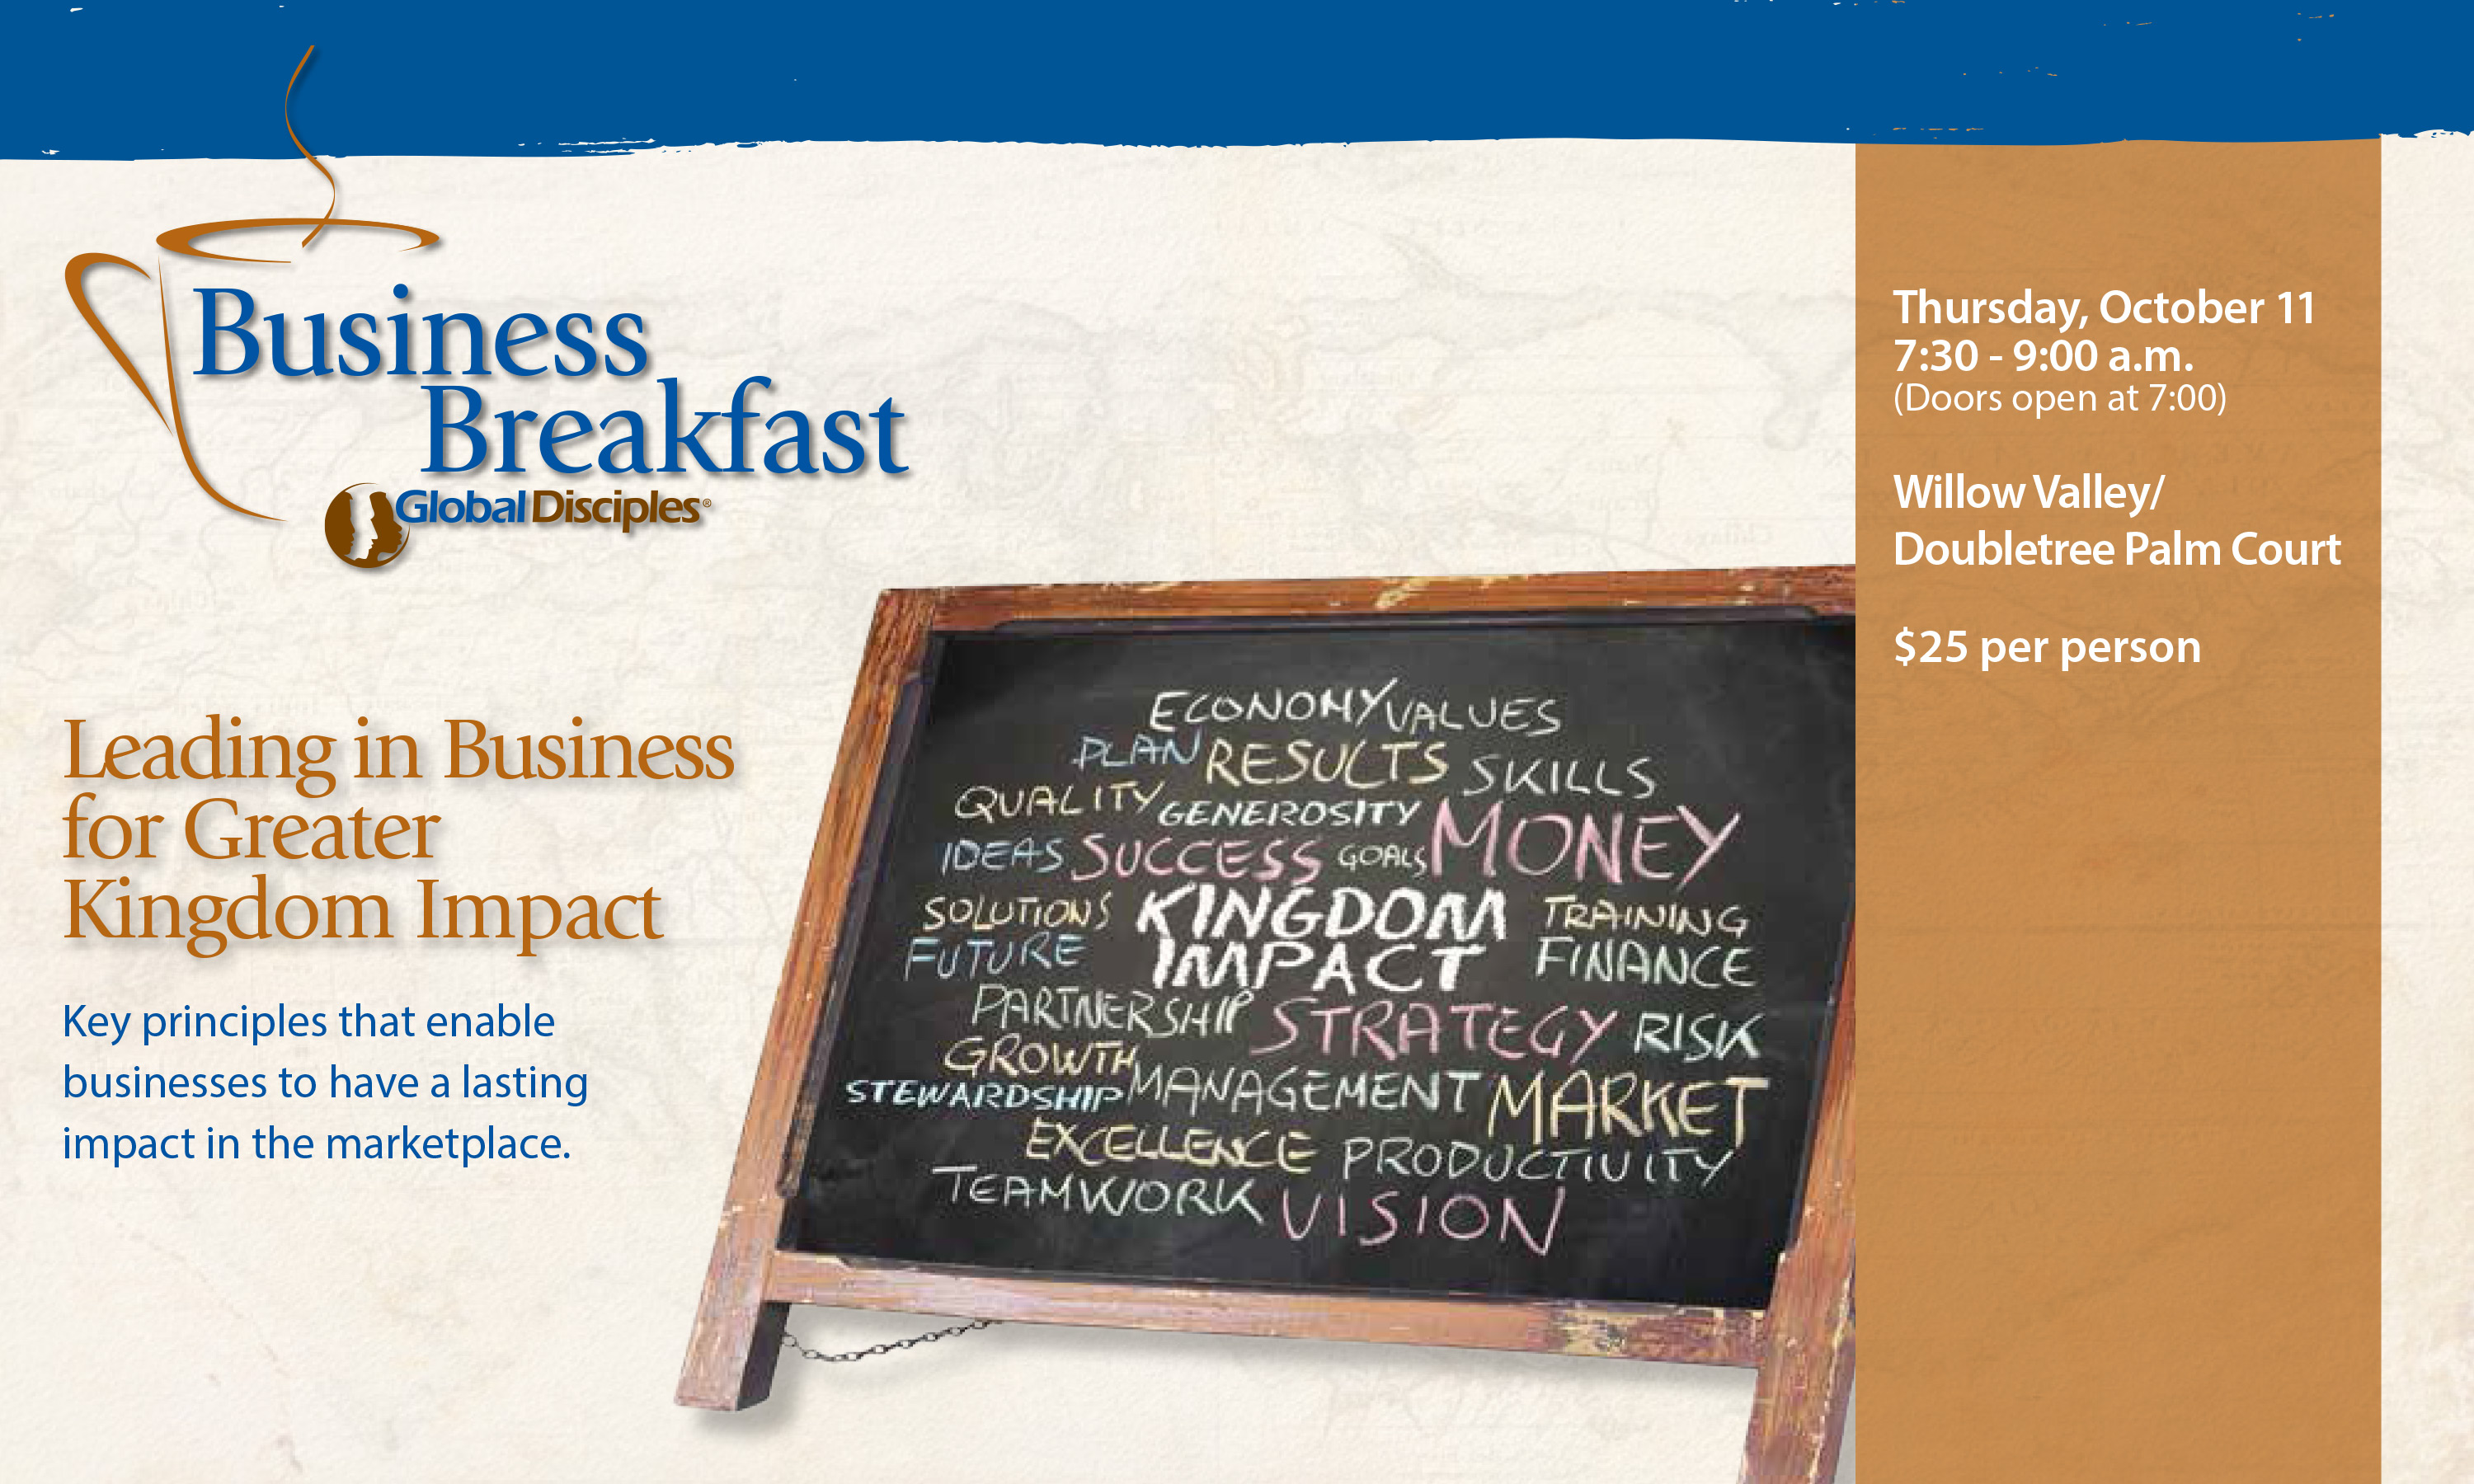 Business Breakfast Invitation - Page 1